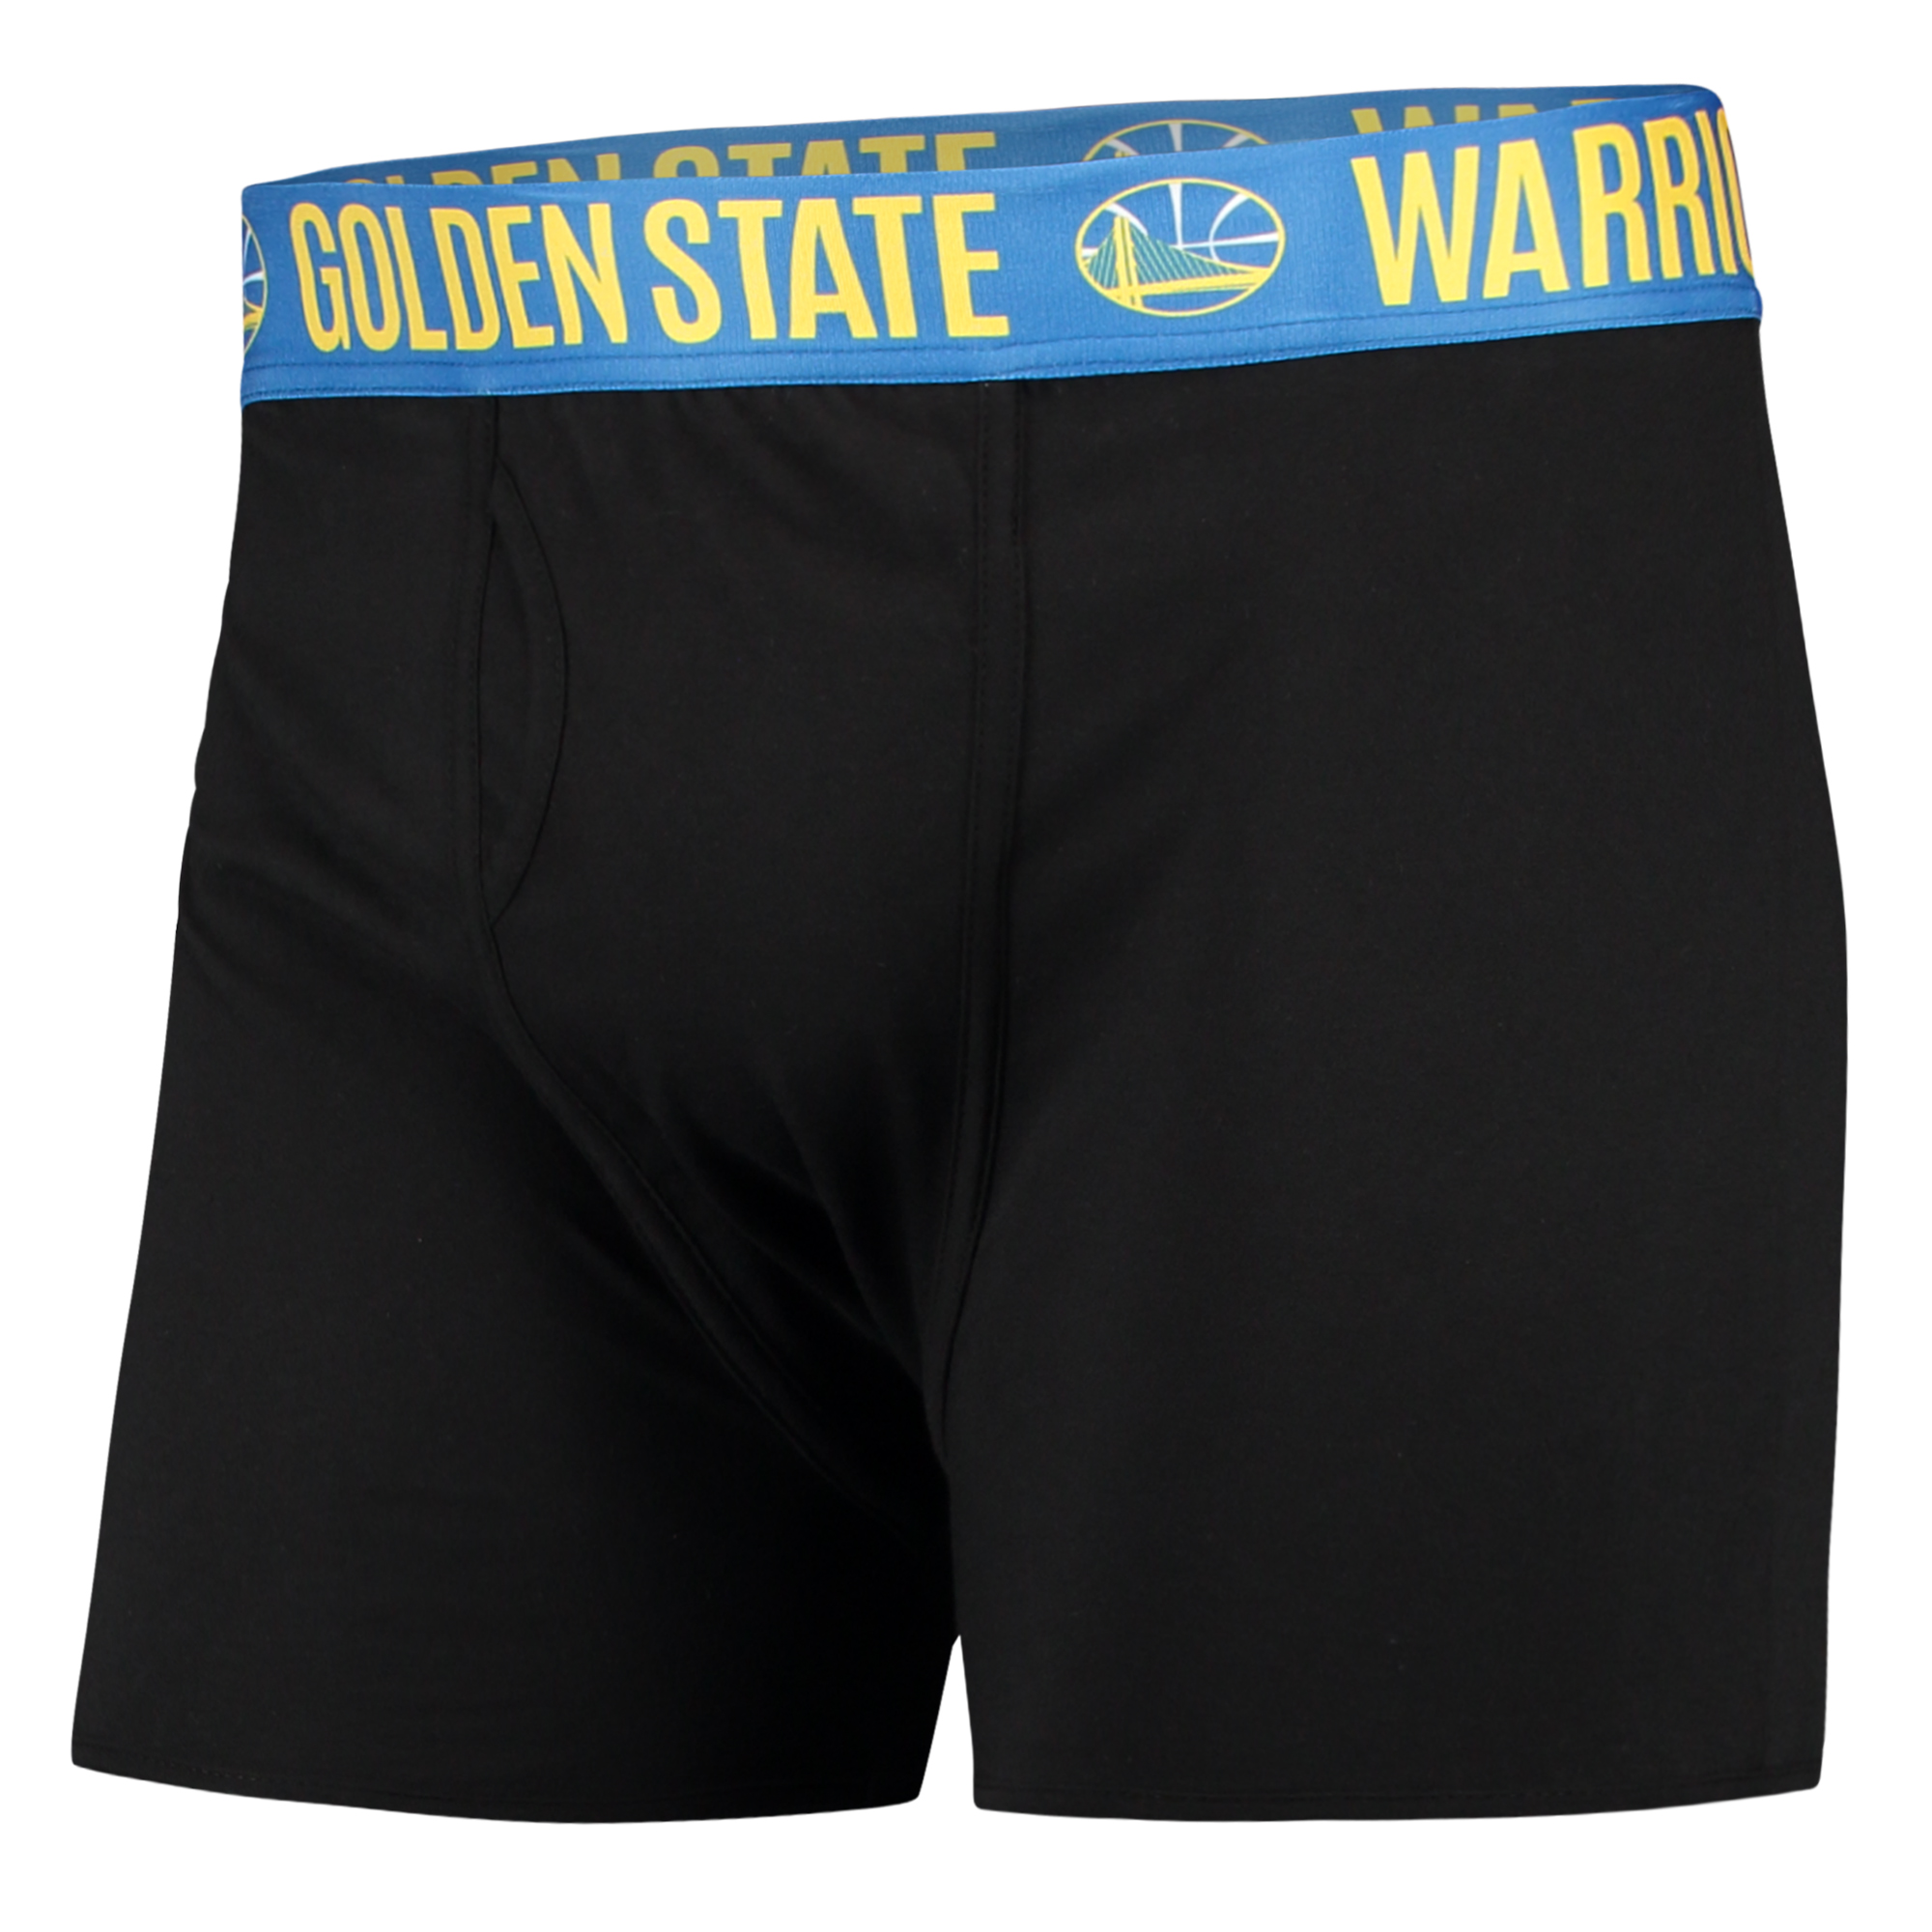 Golden State Warriors Concepts Sport Boxer Brief with Sublimated Waistband - Black